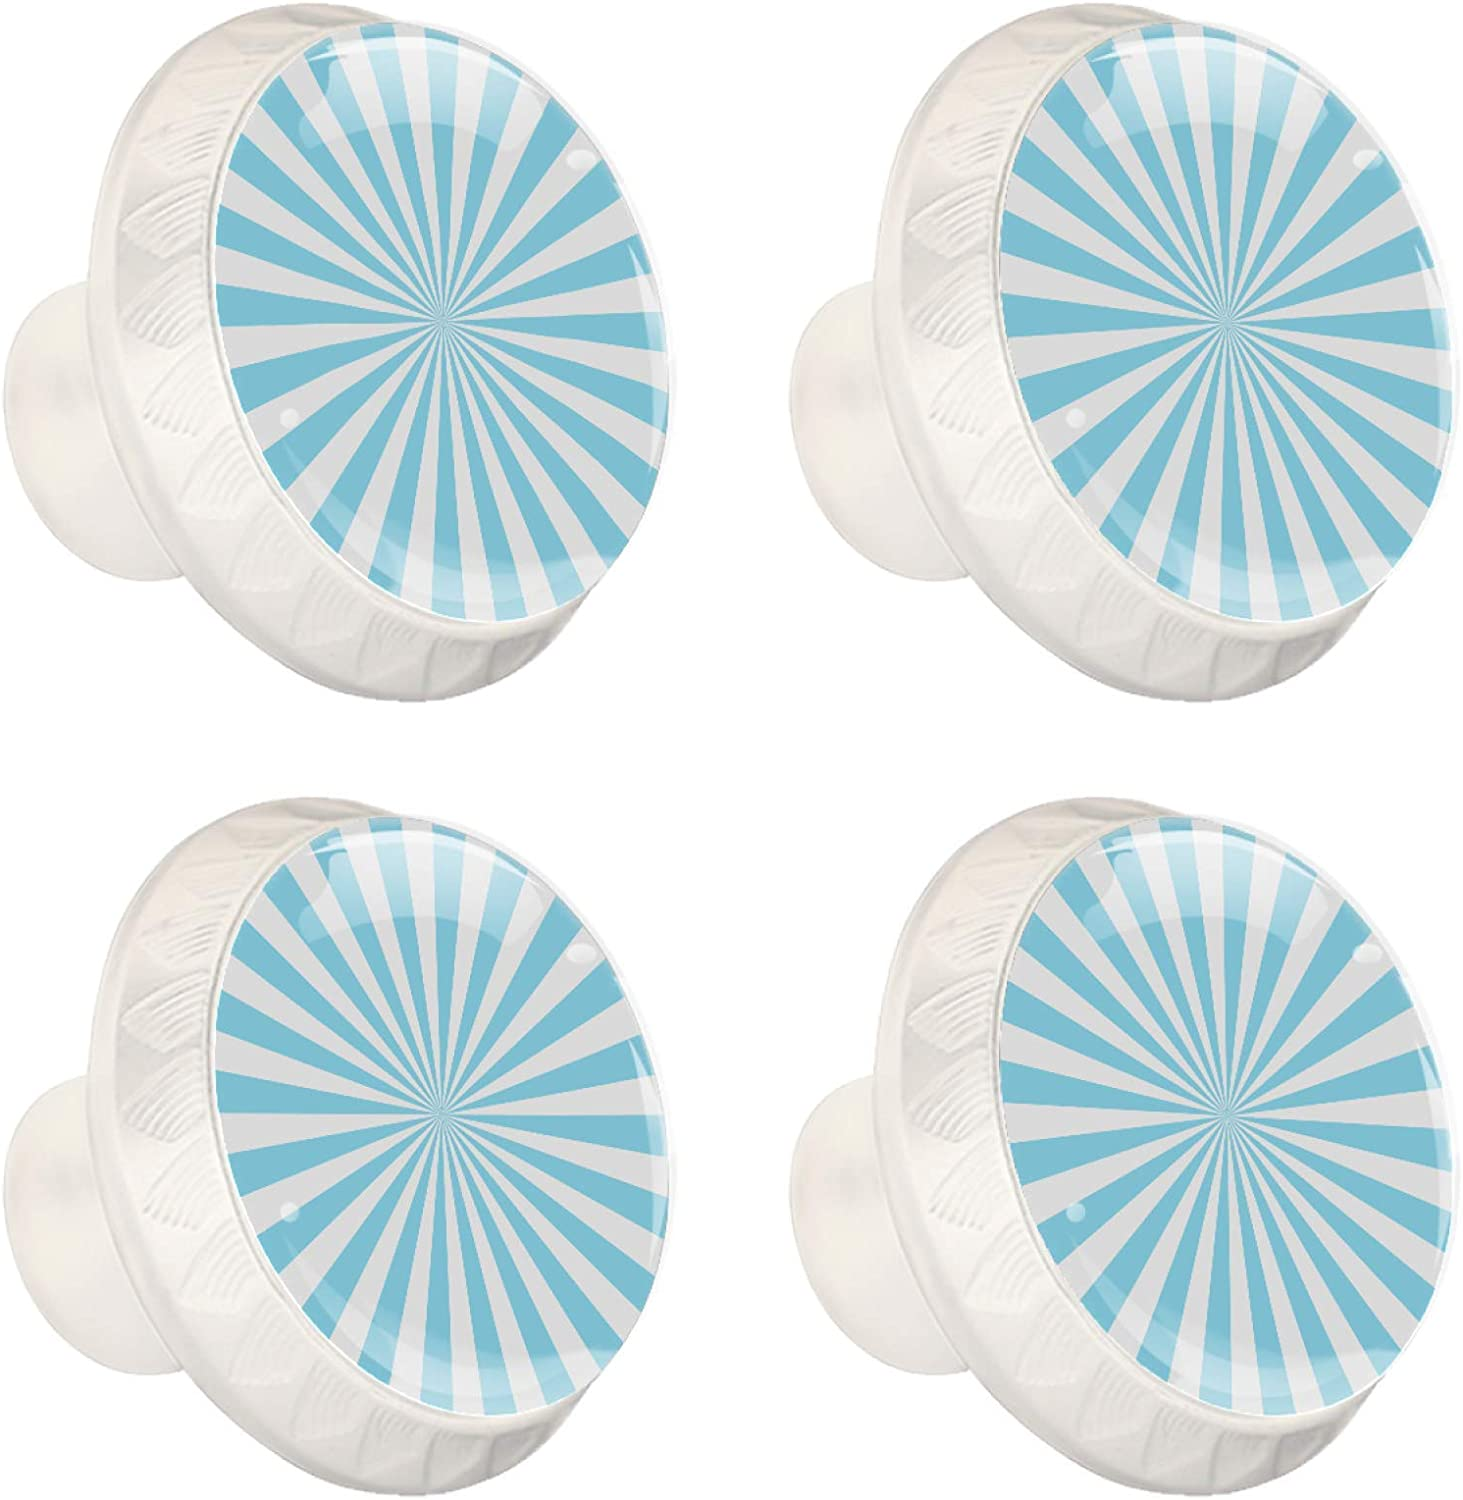 4 Cabinet Knobs for Dresser Drawers Cabinet Handles Pulls for Home Office Cupboard White Blue line